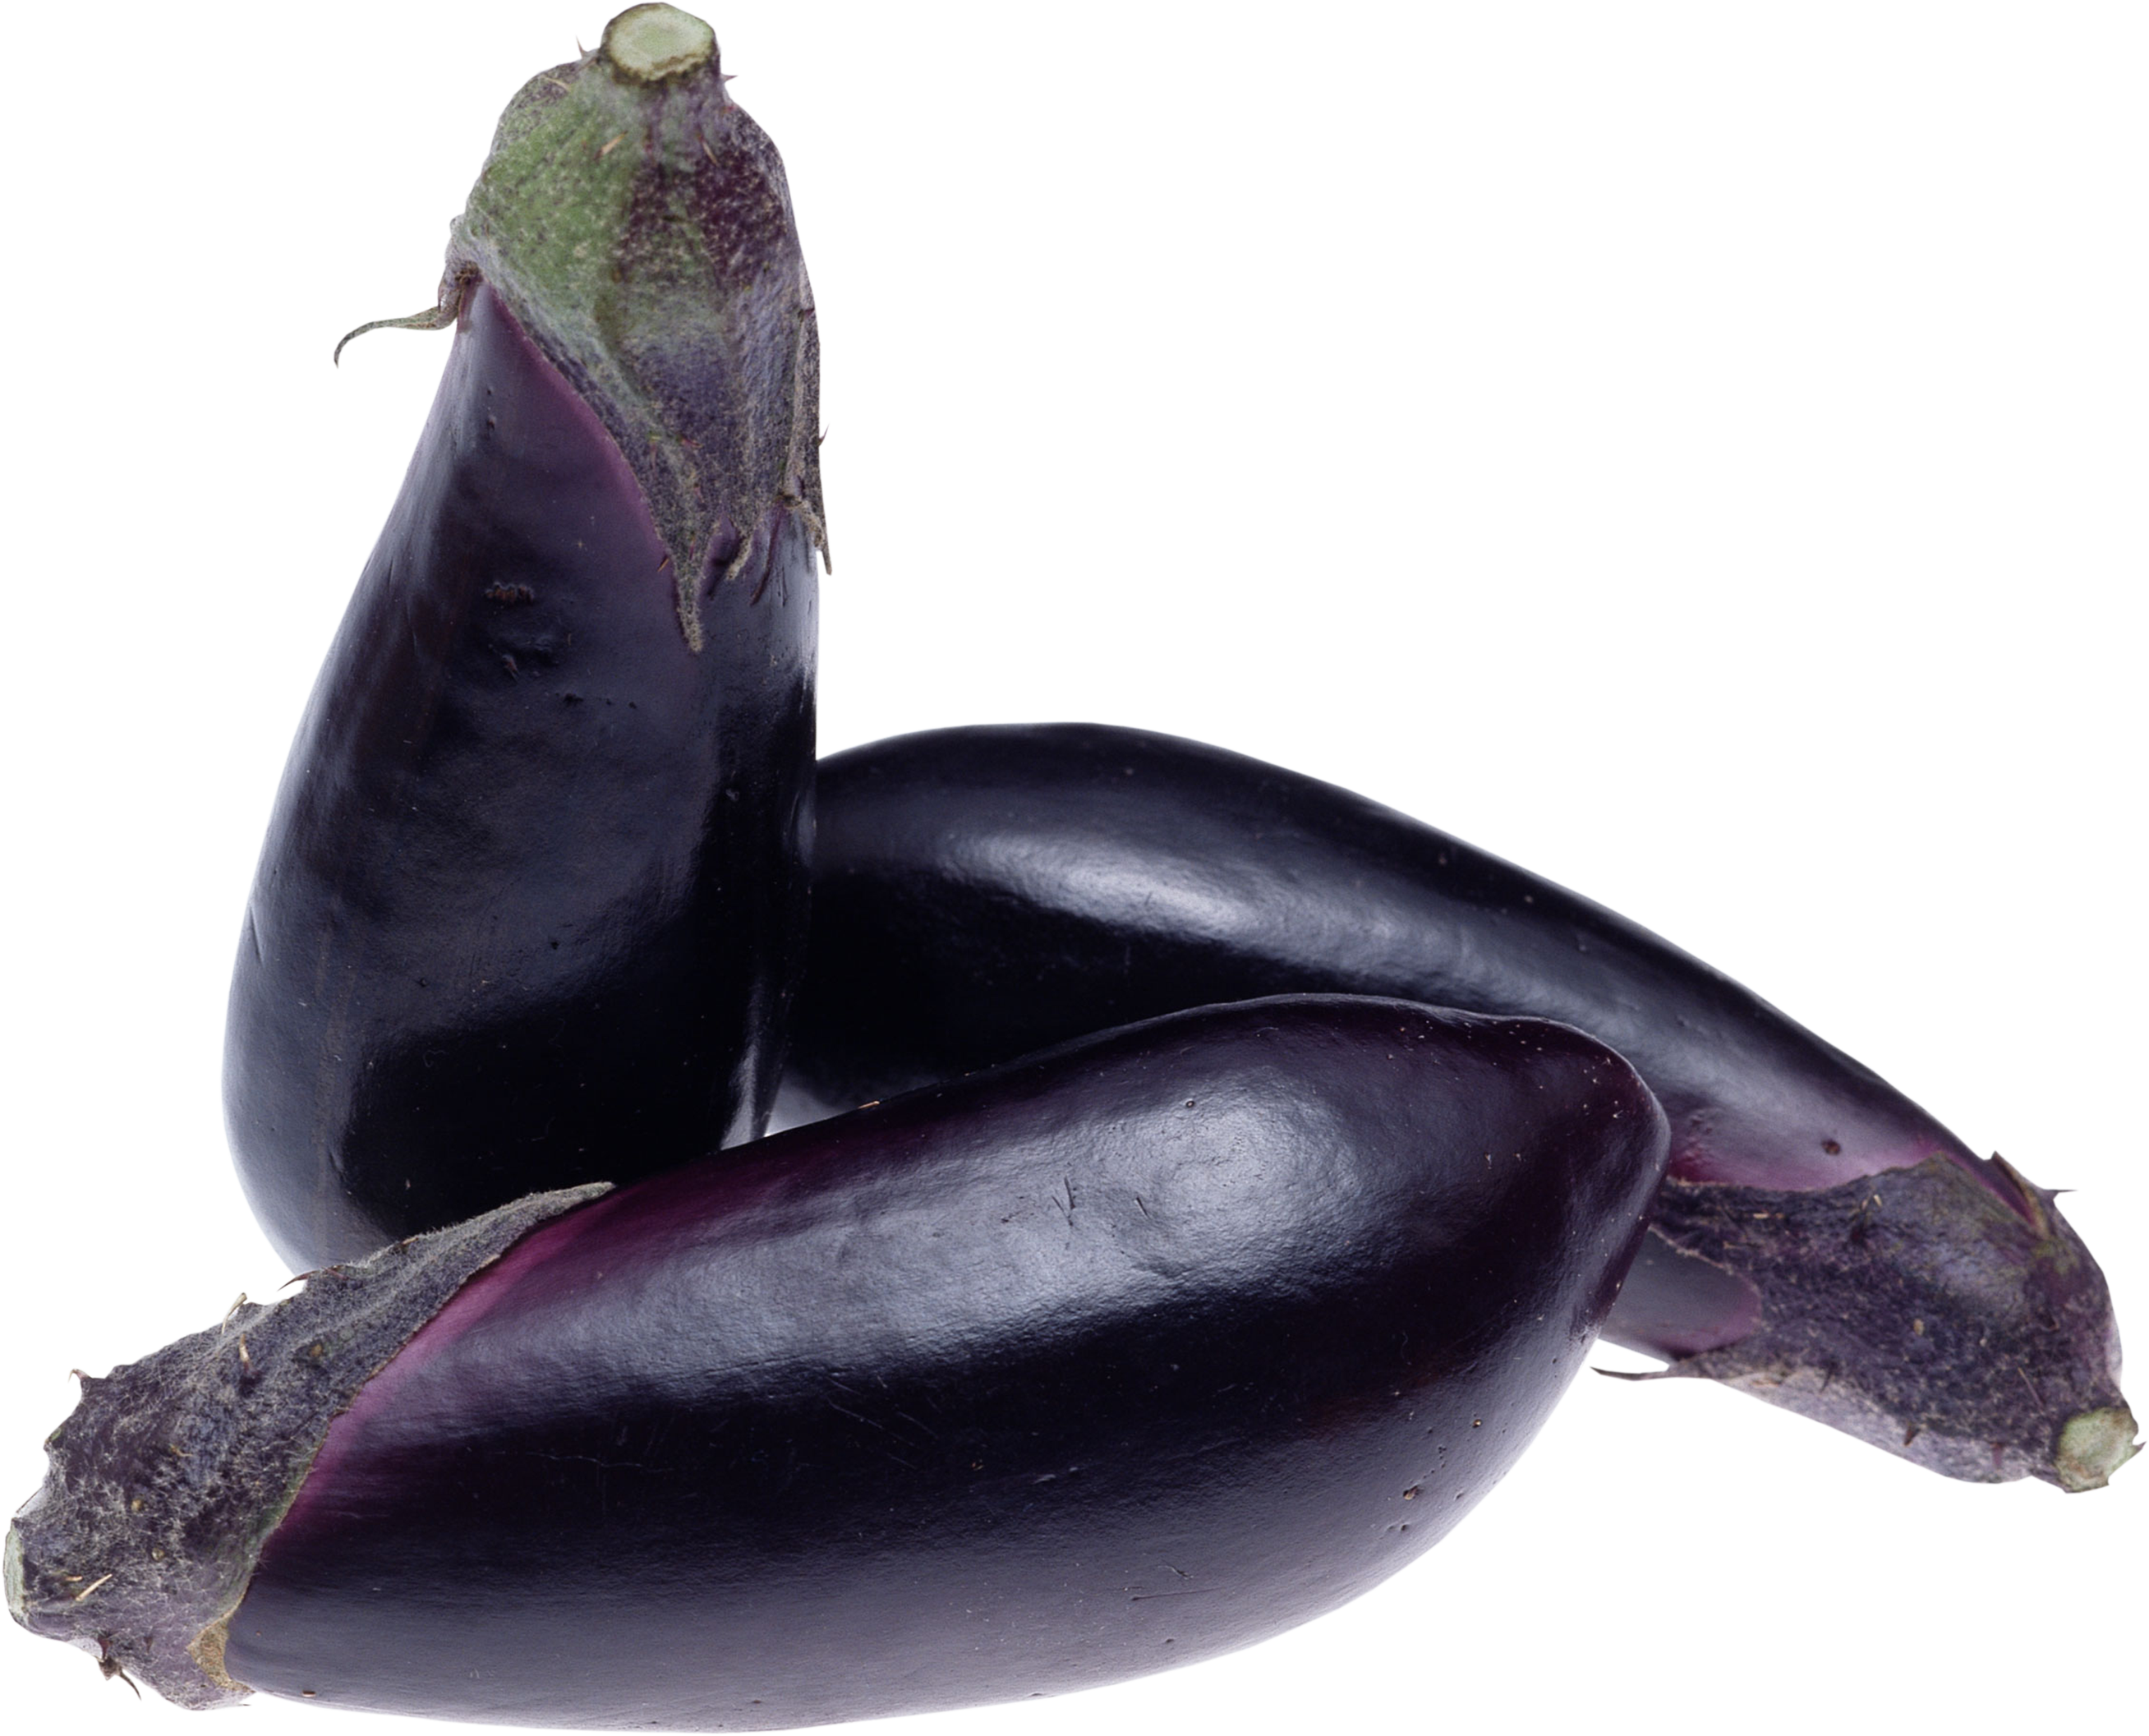 Eggplant PNG images free download.